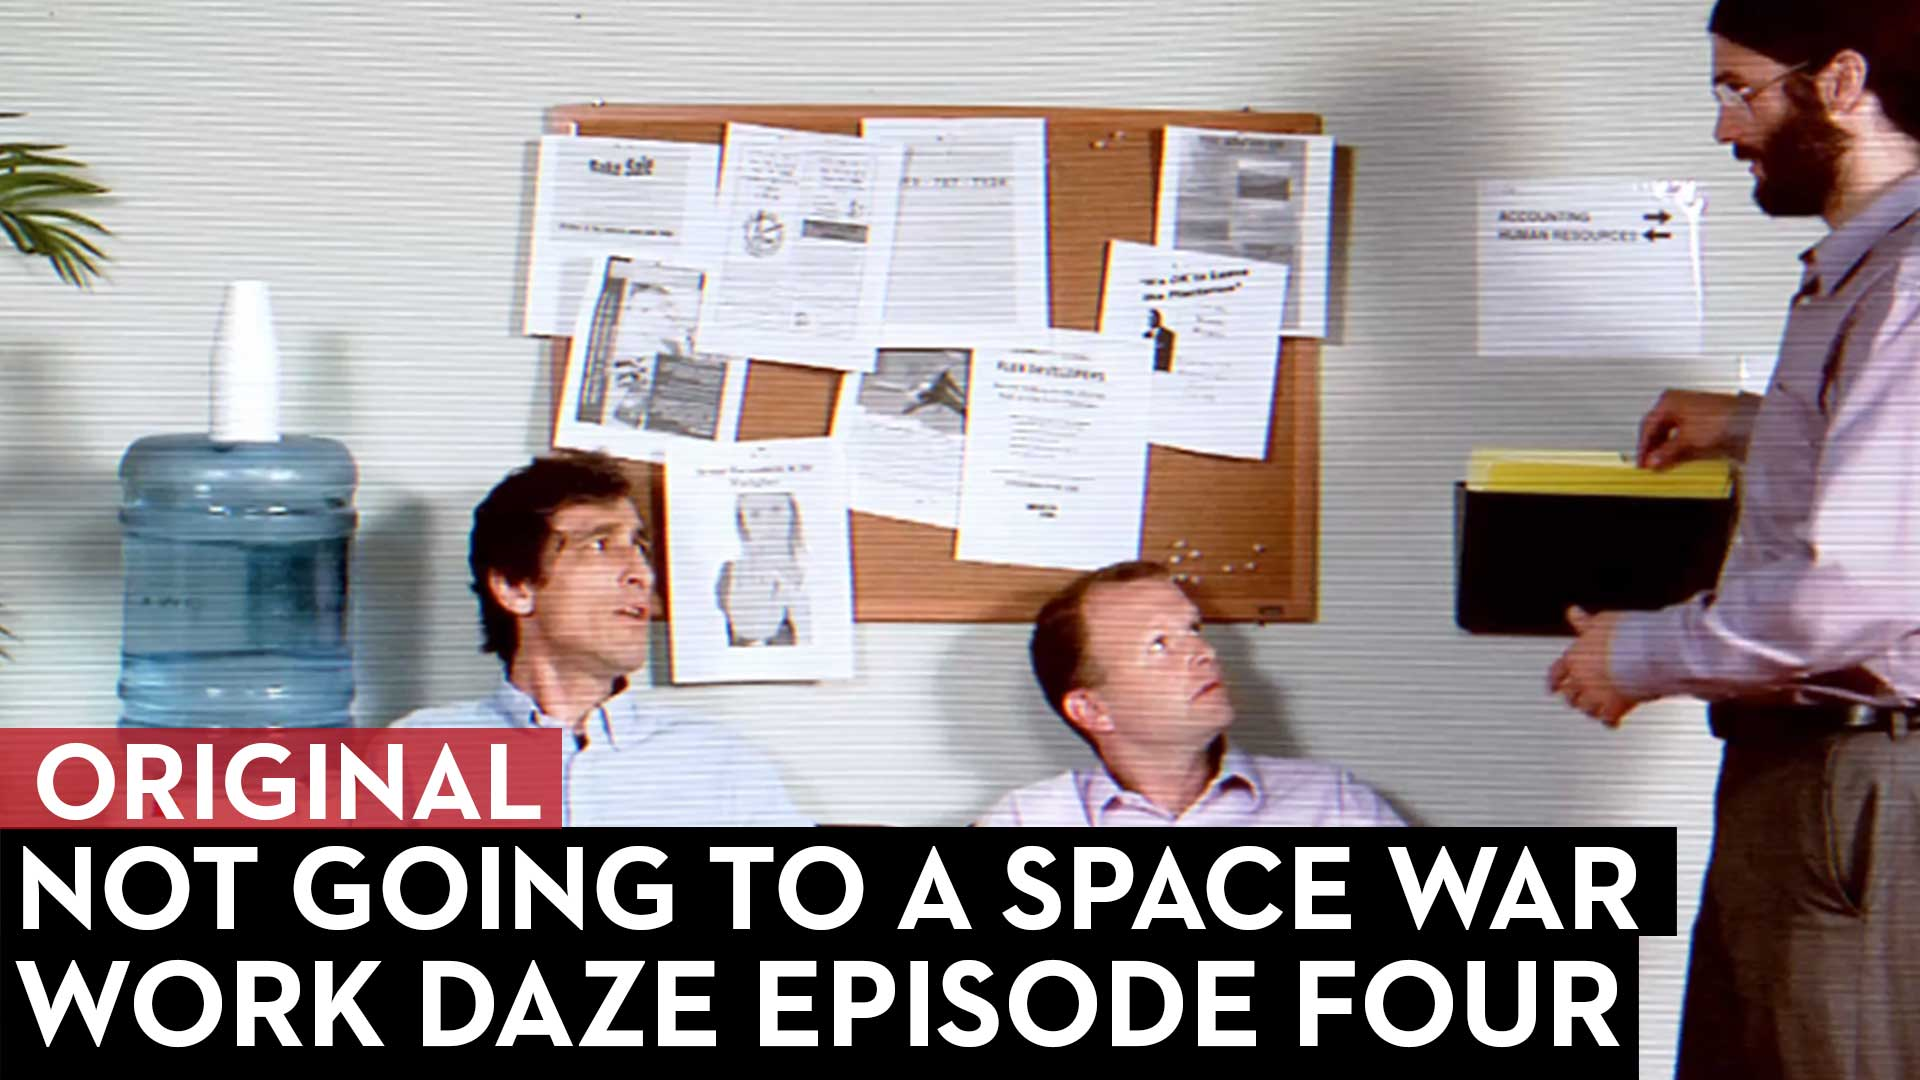 Work Daze Episode Four: Not Going to a Space War